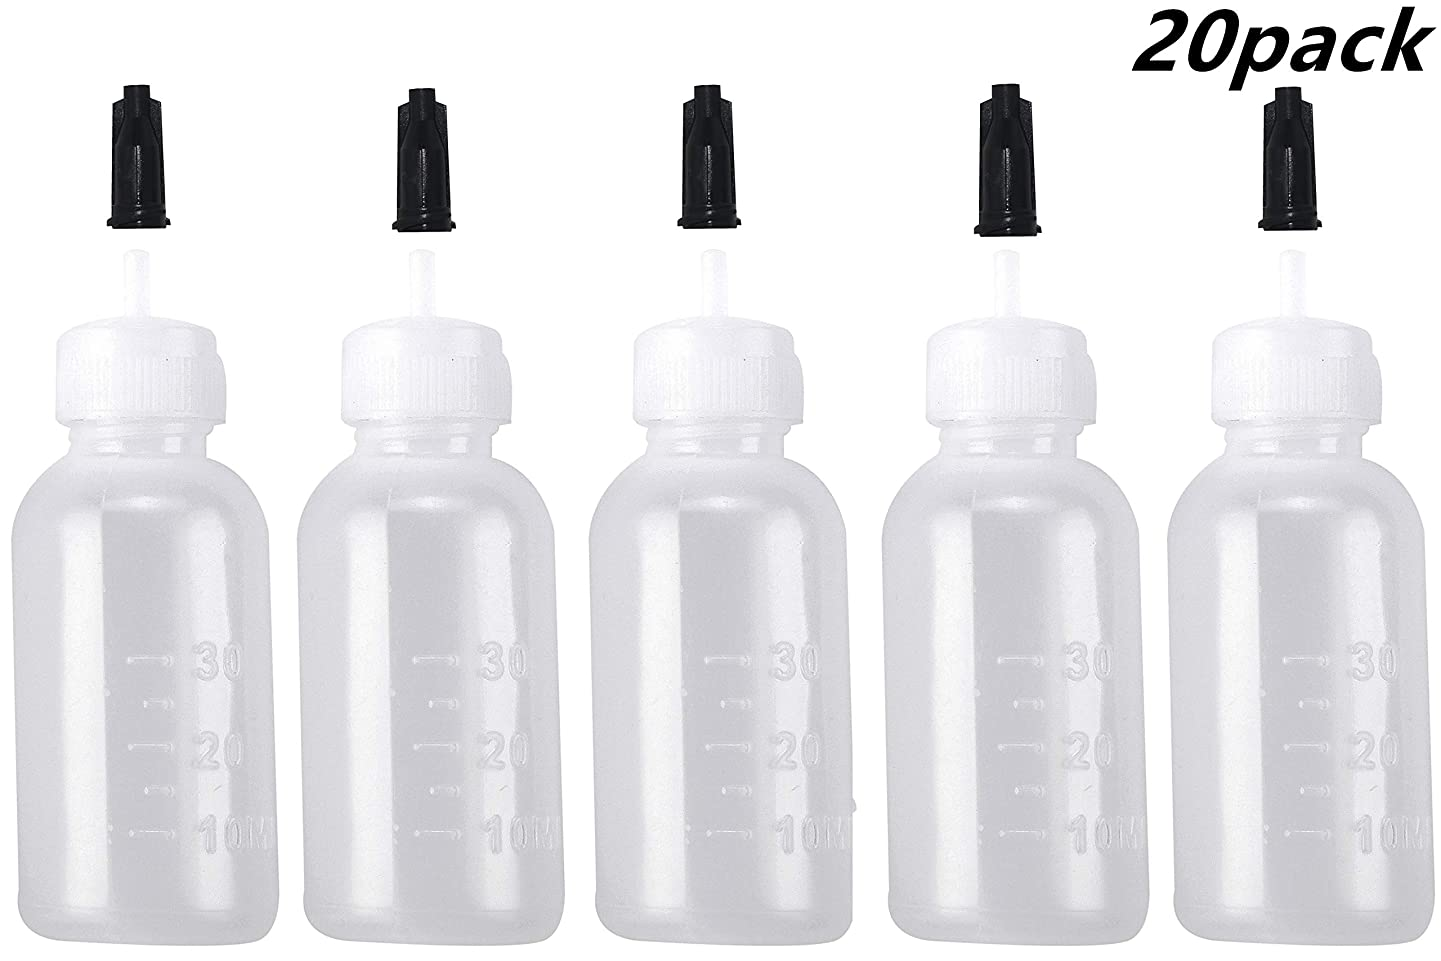 20 Pack Multi-Purpose Applications Bottle with Tip Cap - 30ML Plastic Squeeze Bottles for Crafts, Art, Glue and Oil